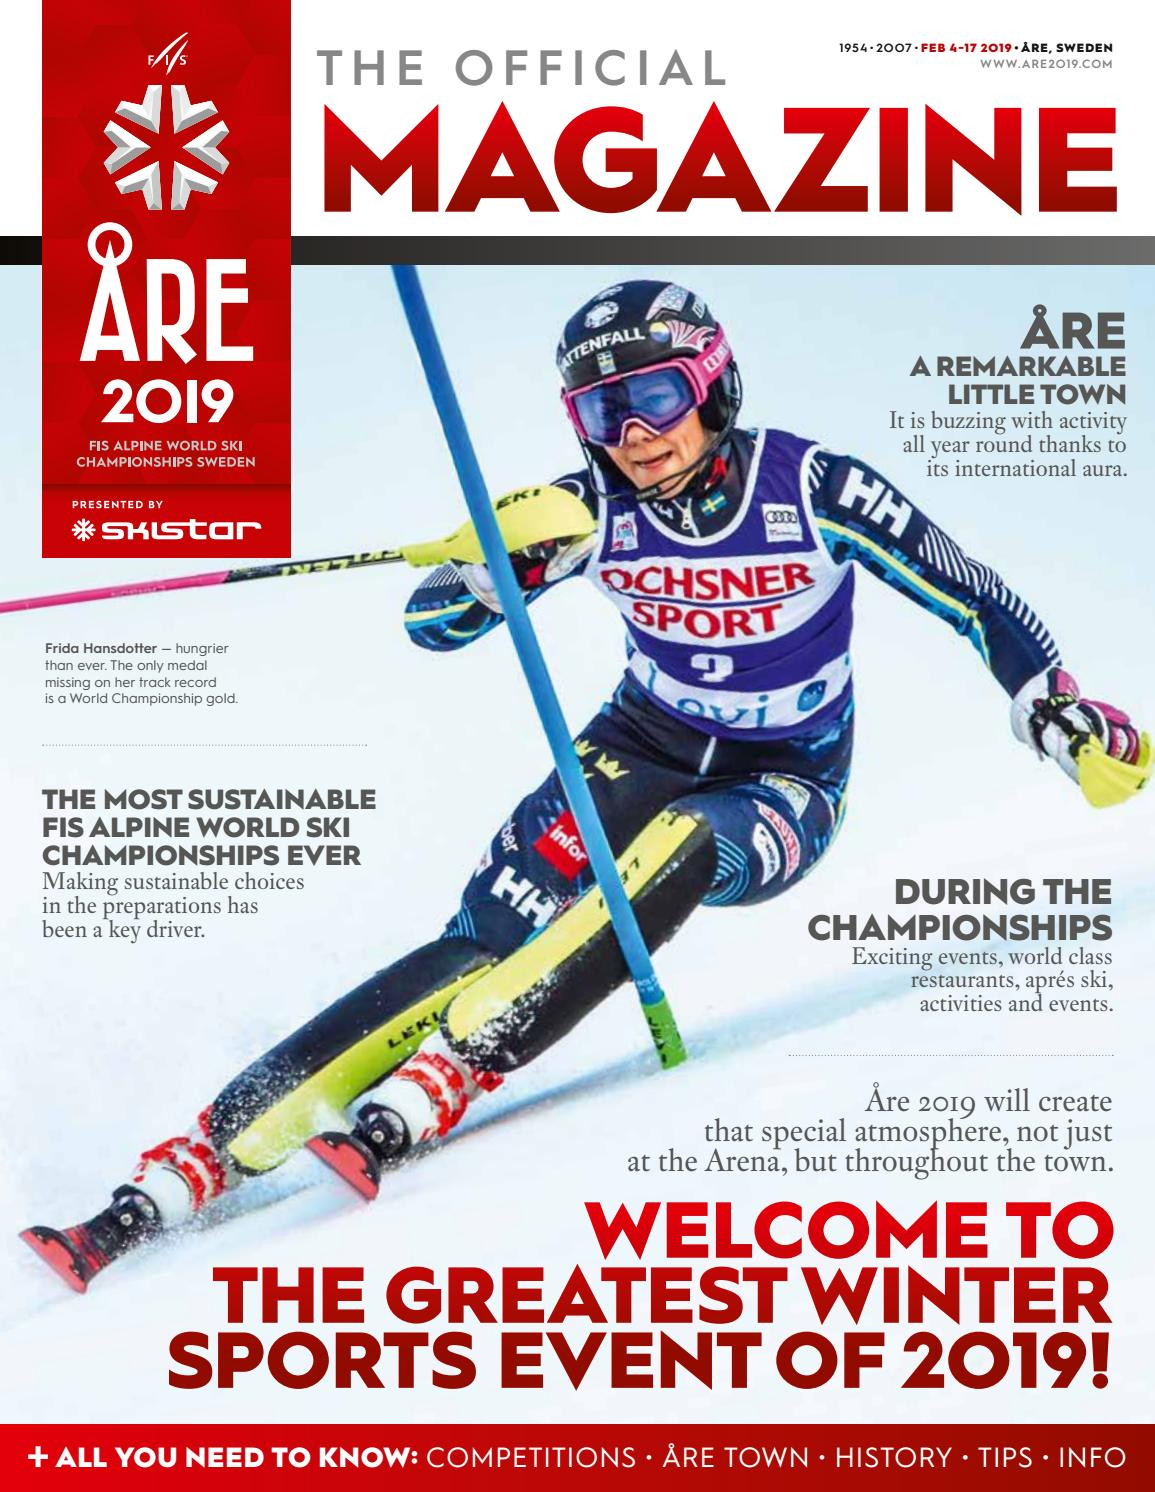 The Official Magazine Are 2019 By Are 2019 Issuu